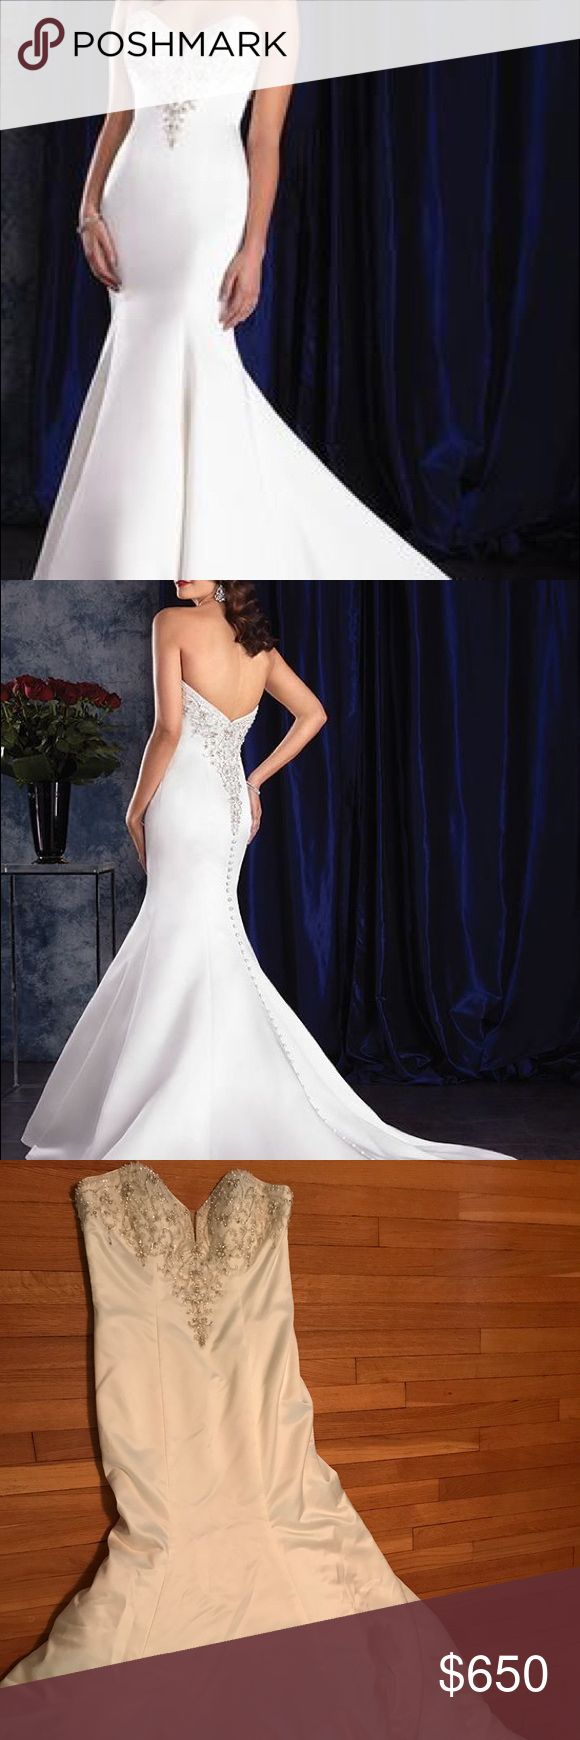 New with tags Alfred Angelo Wedding Dress Size 12 New with tags style 405 Sapphire by Alfred Angelo Wedding Dress Size 12 in ivory / metallic. Front panel with mesh and beads. Strapless dress. Never worn. Accepting best offer! MRSP $ 1295 Alfred Angelo Dresses Wedding